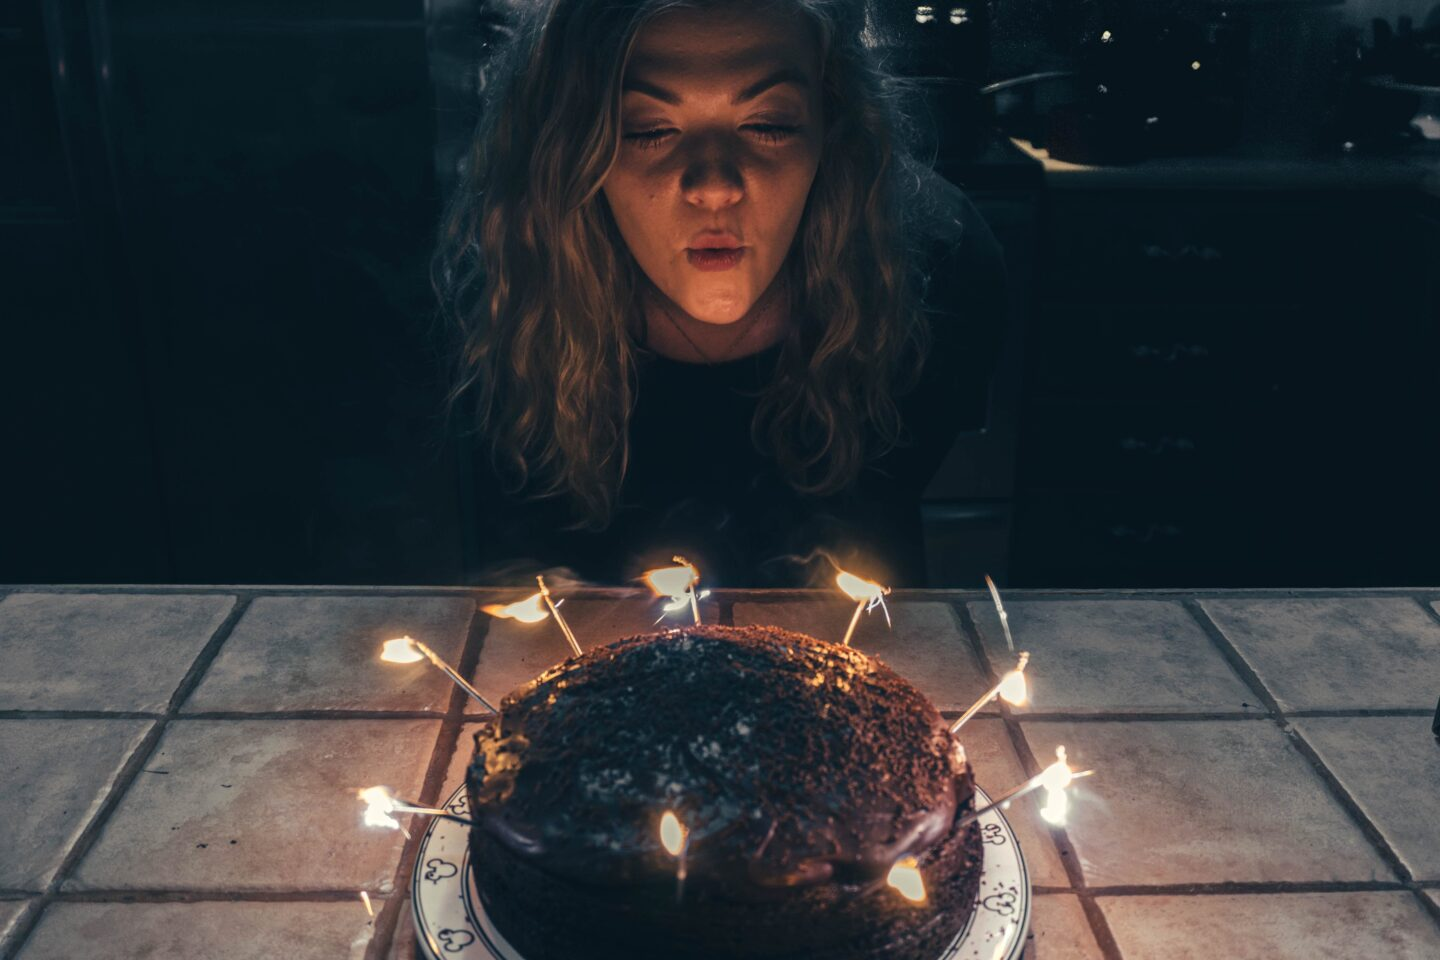 Look up birthday promotions to truly enjoy your birthday on a budget